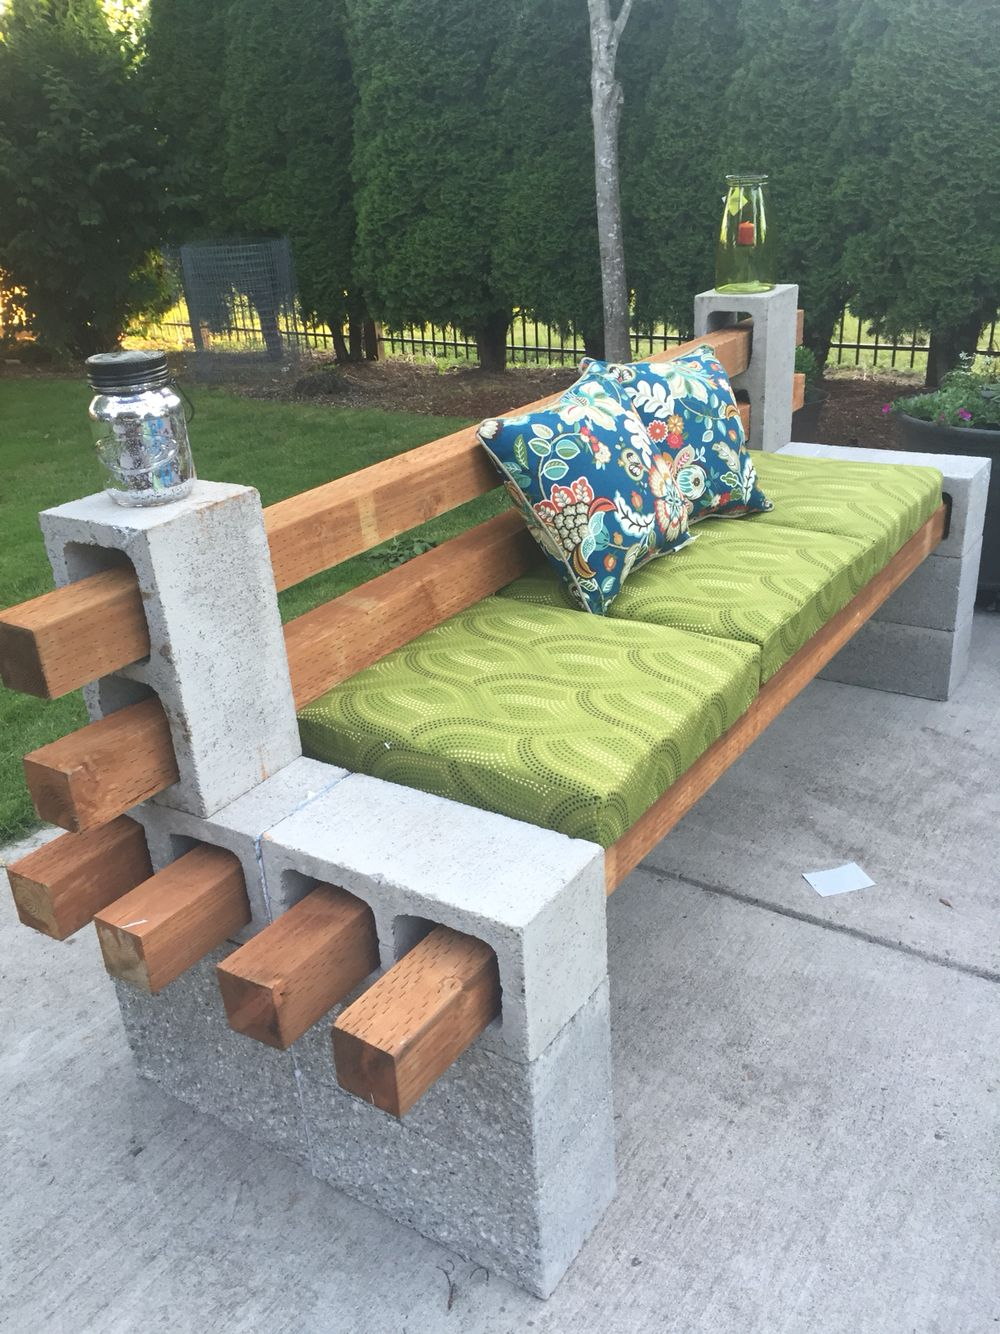 cinder block bench 13 diy patio furniture ideas that are simple and cheap ... VQEUADH